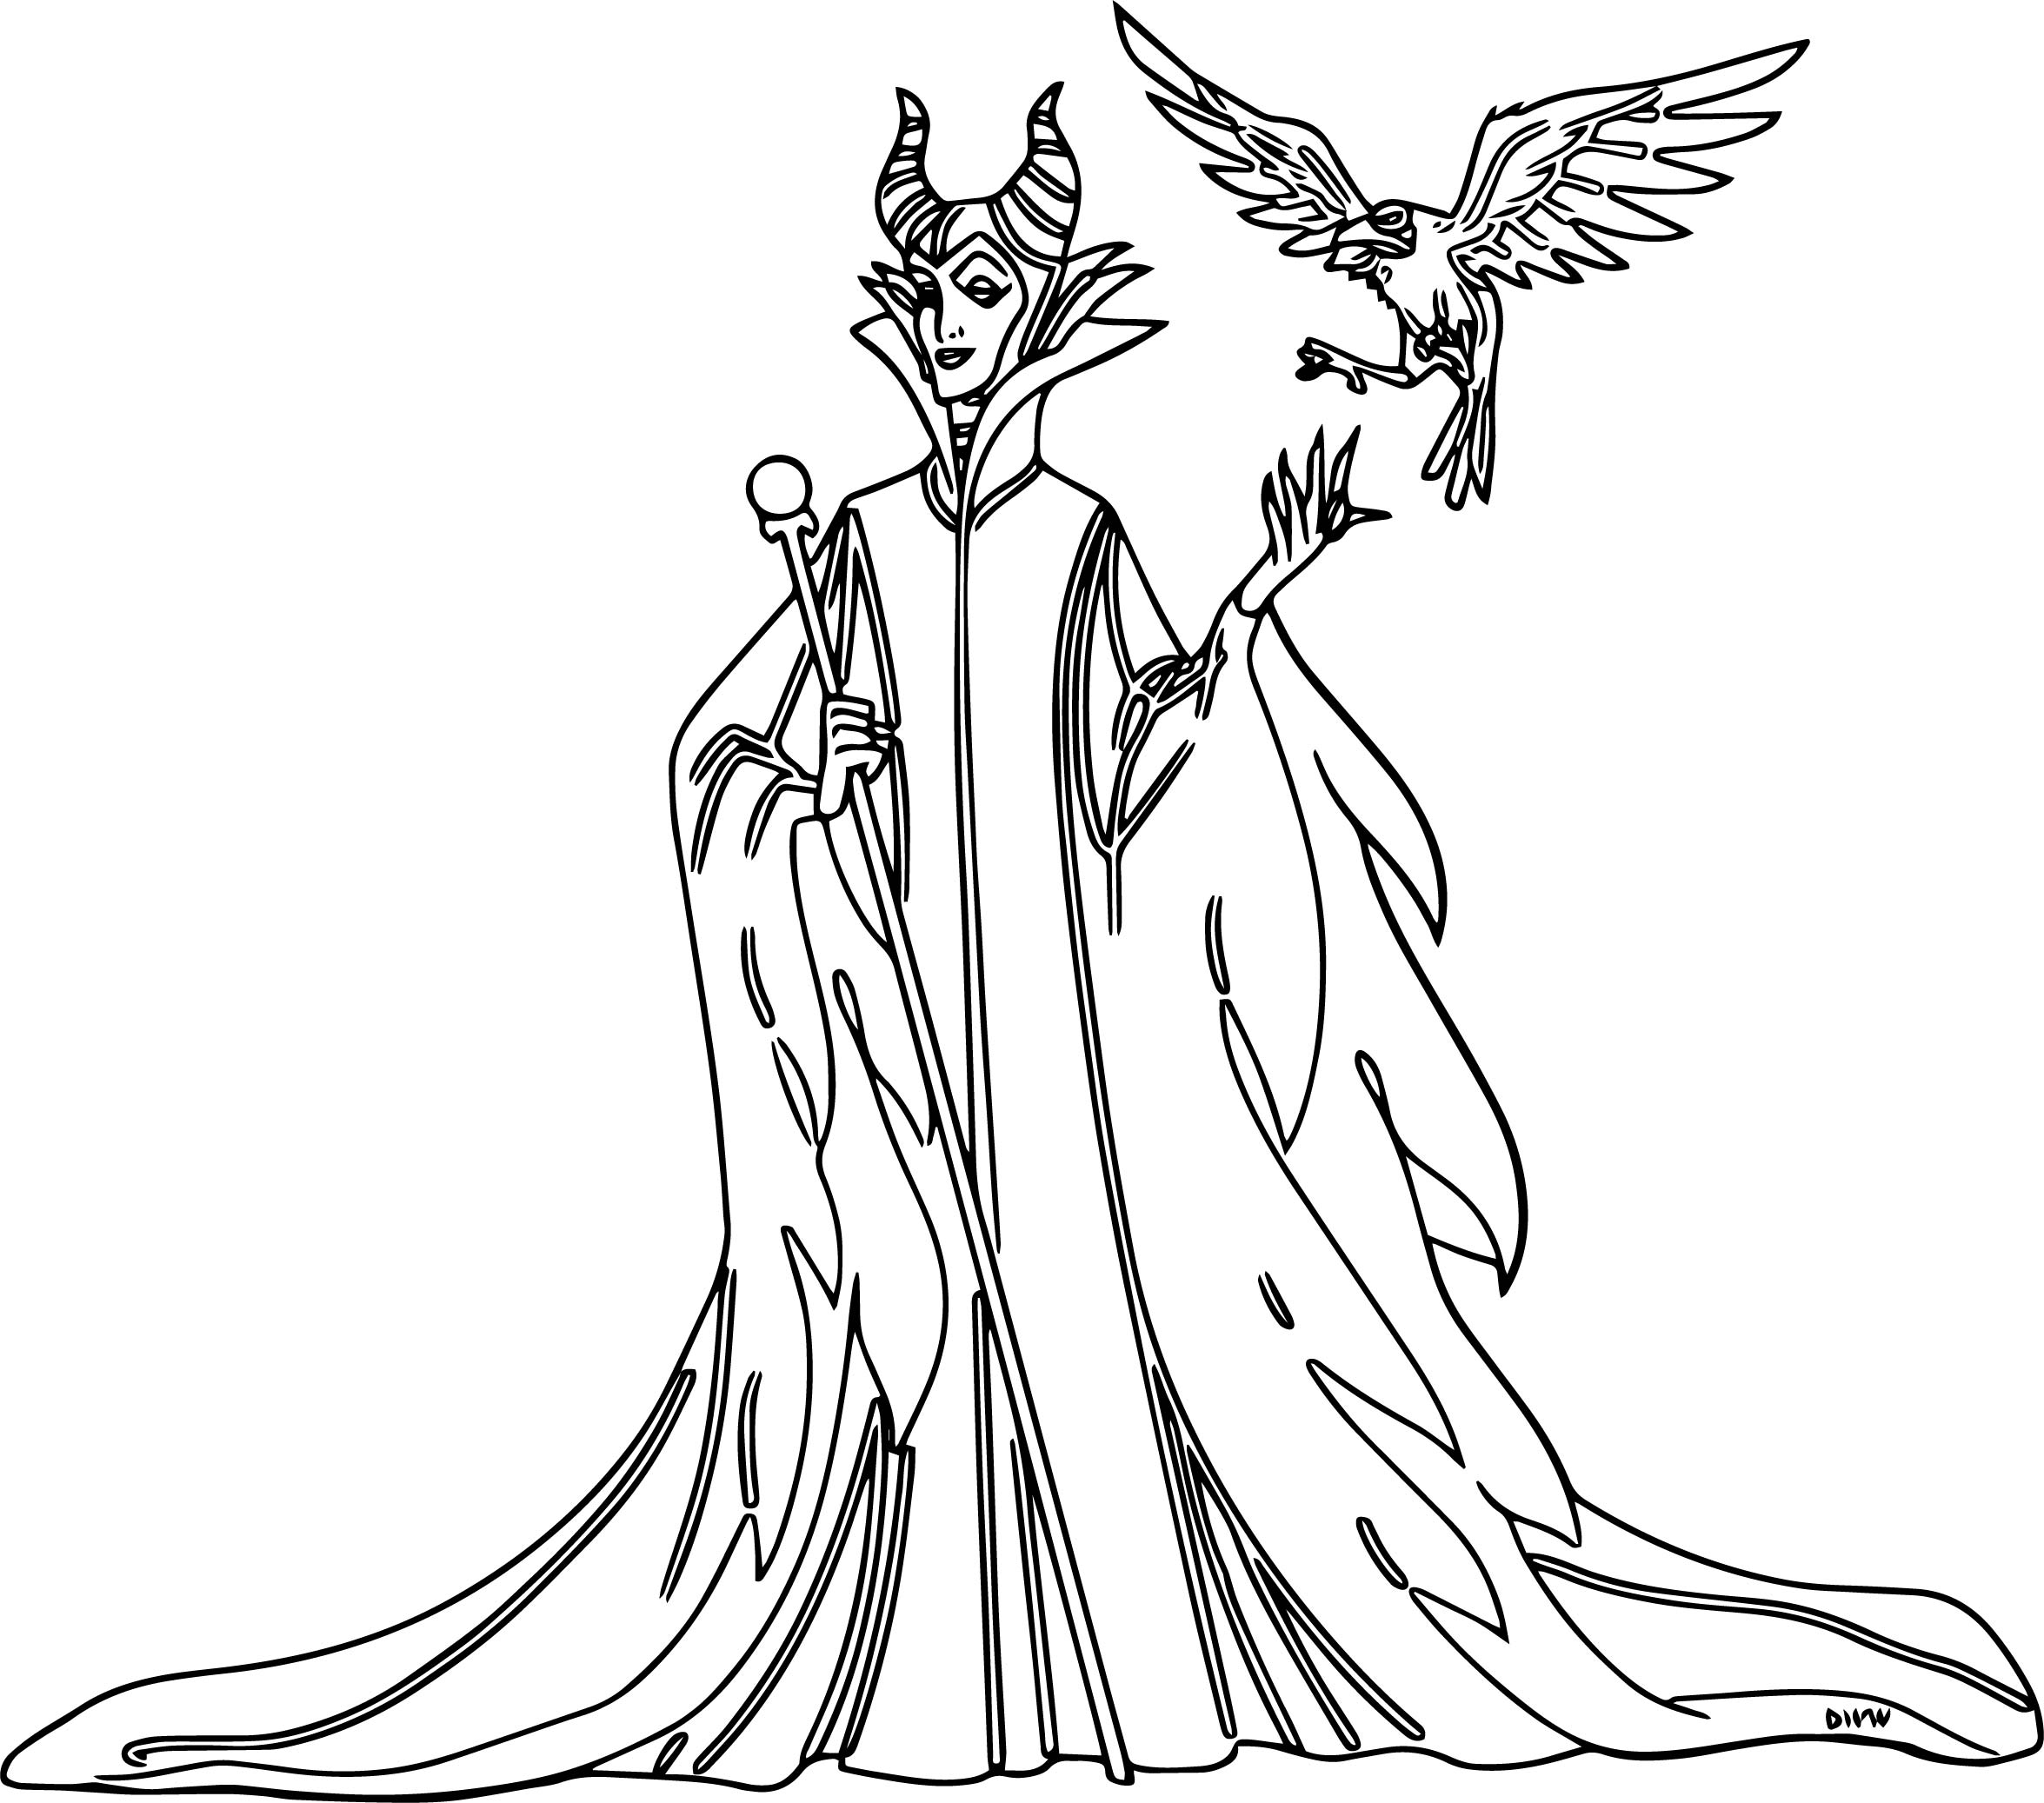 Maleficent Come Diablo Coloring Page